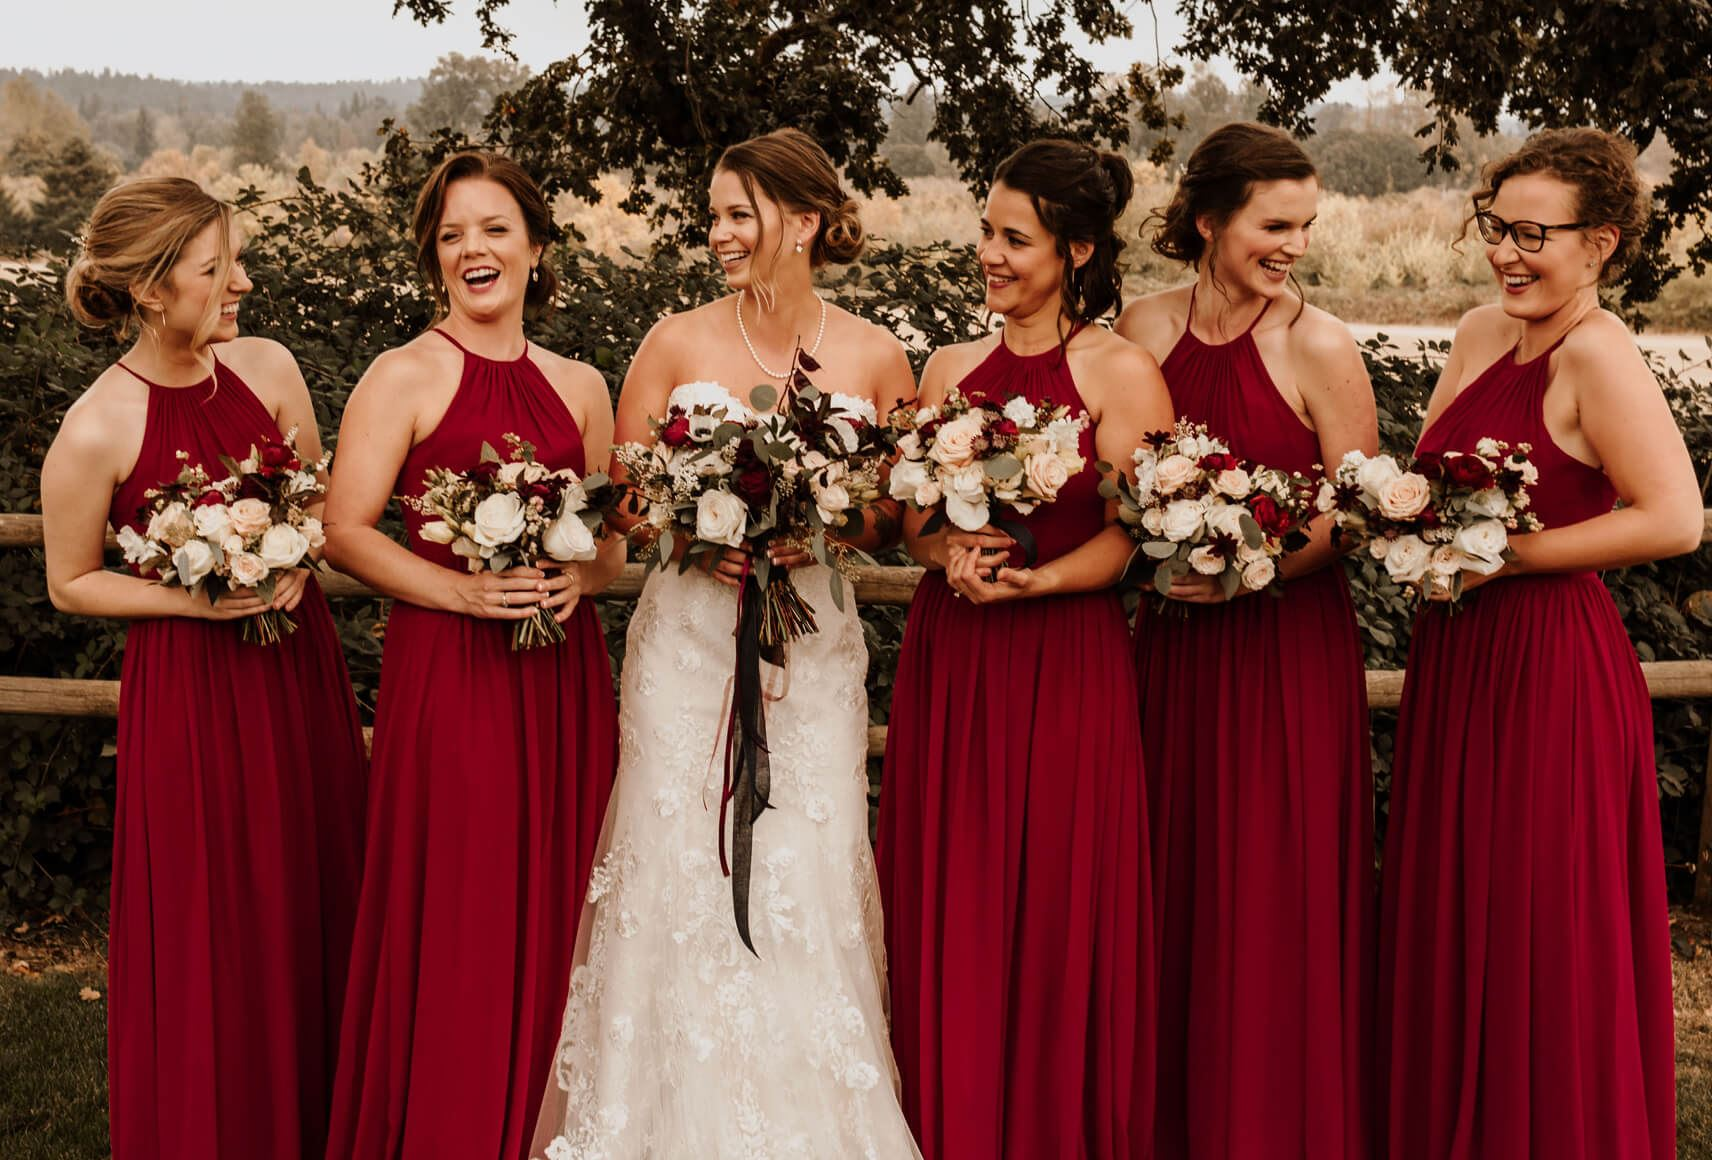 HOW LONG DOES IT TAKE TO ORDER BRIDESMAID DRESSES? AND WHAT IF MY BRIDESMAIDS ARE IN DIFFERENT CITIES?